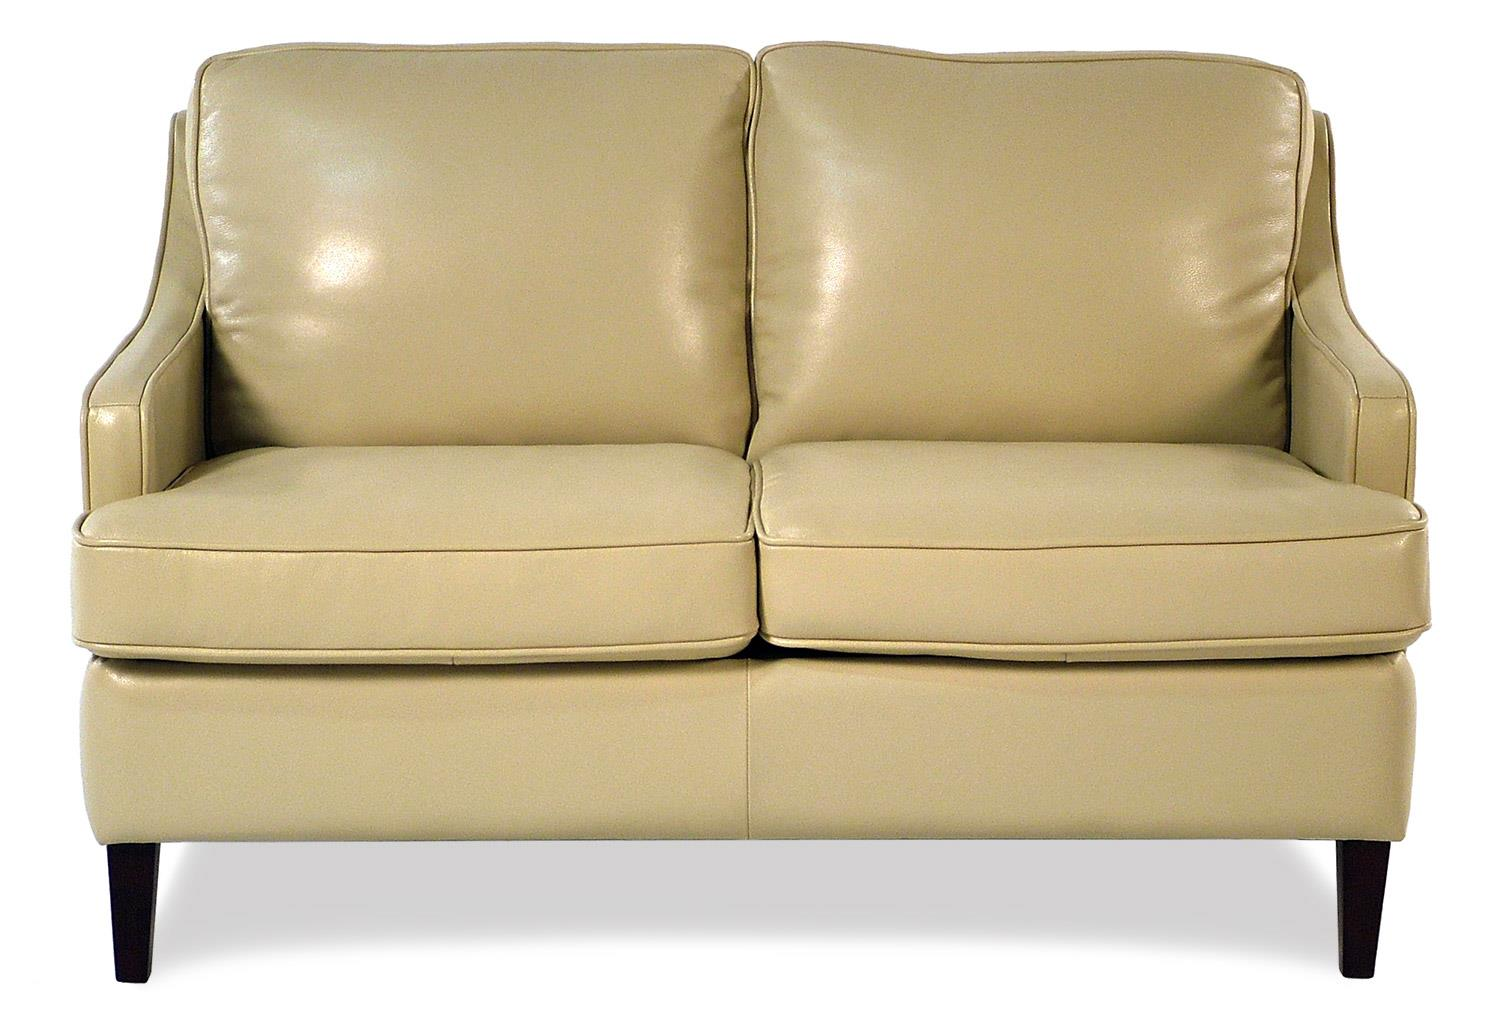 Loft Leather Ally Leather Loveseat - Item Number: 8658-20